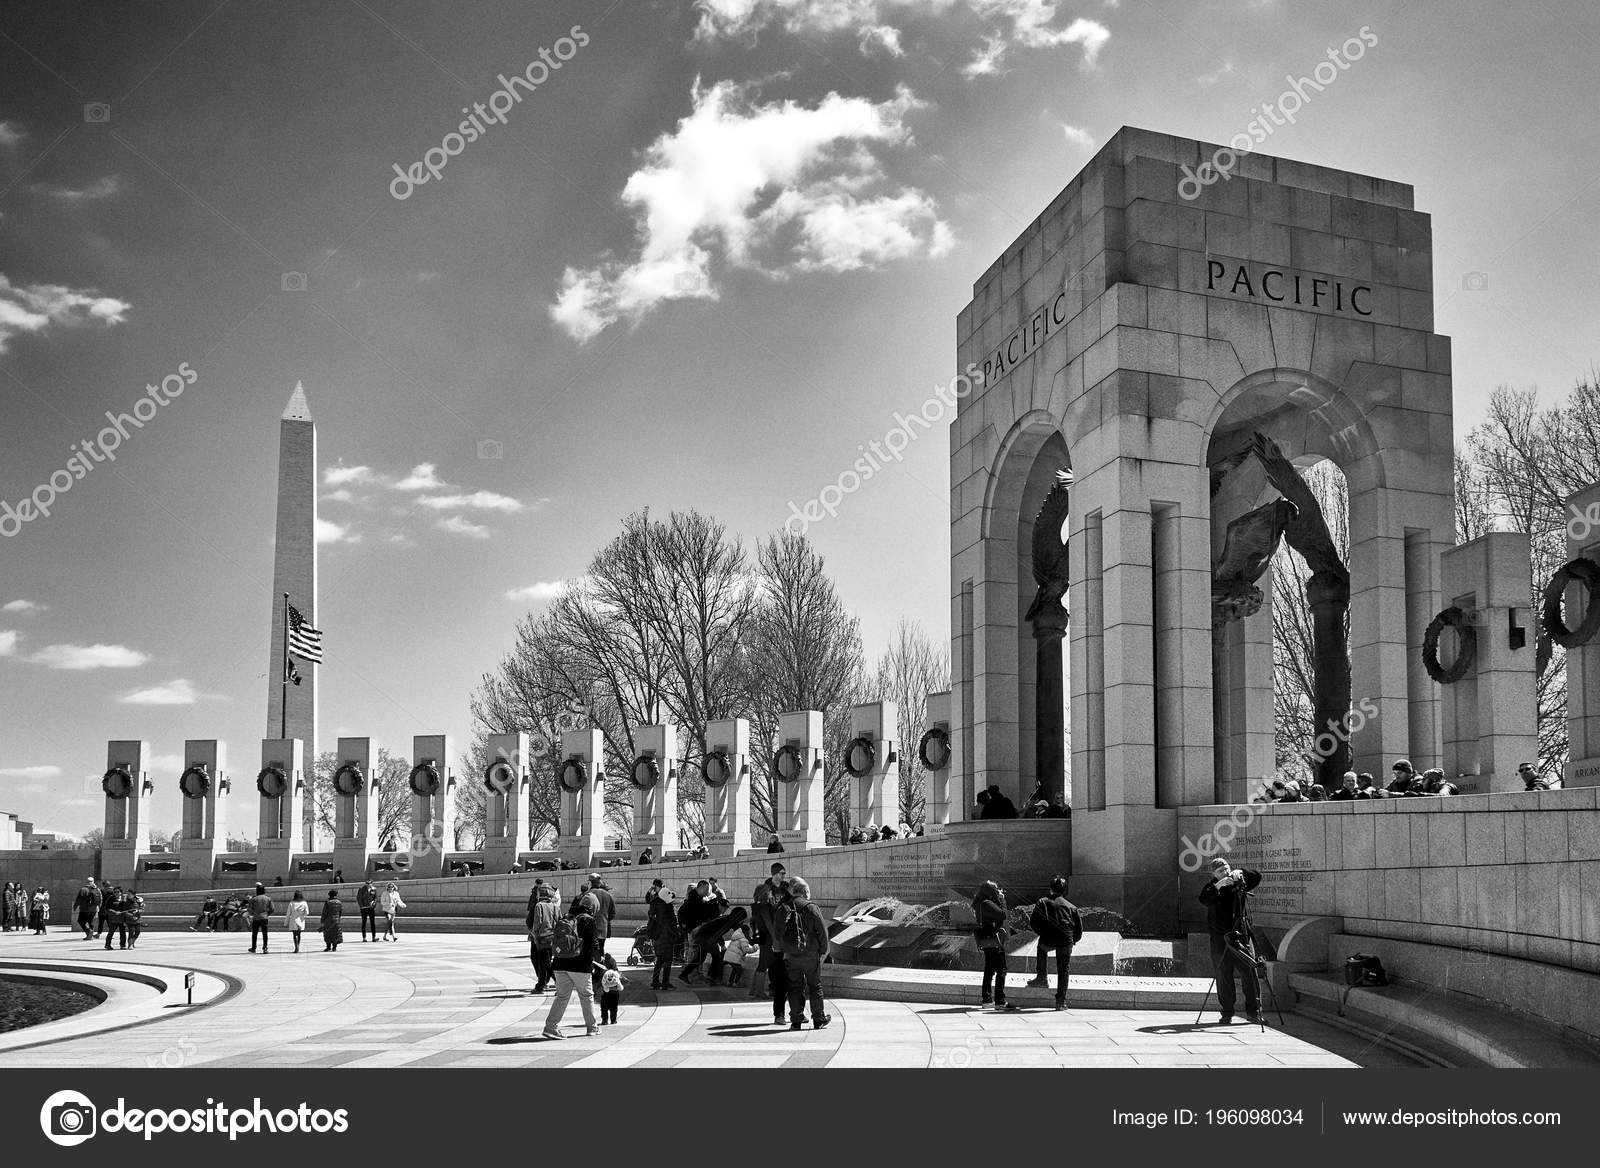 Washington dc usa april 2018 world world ii memorial pacific section in black and white each pillar represents a state photo by